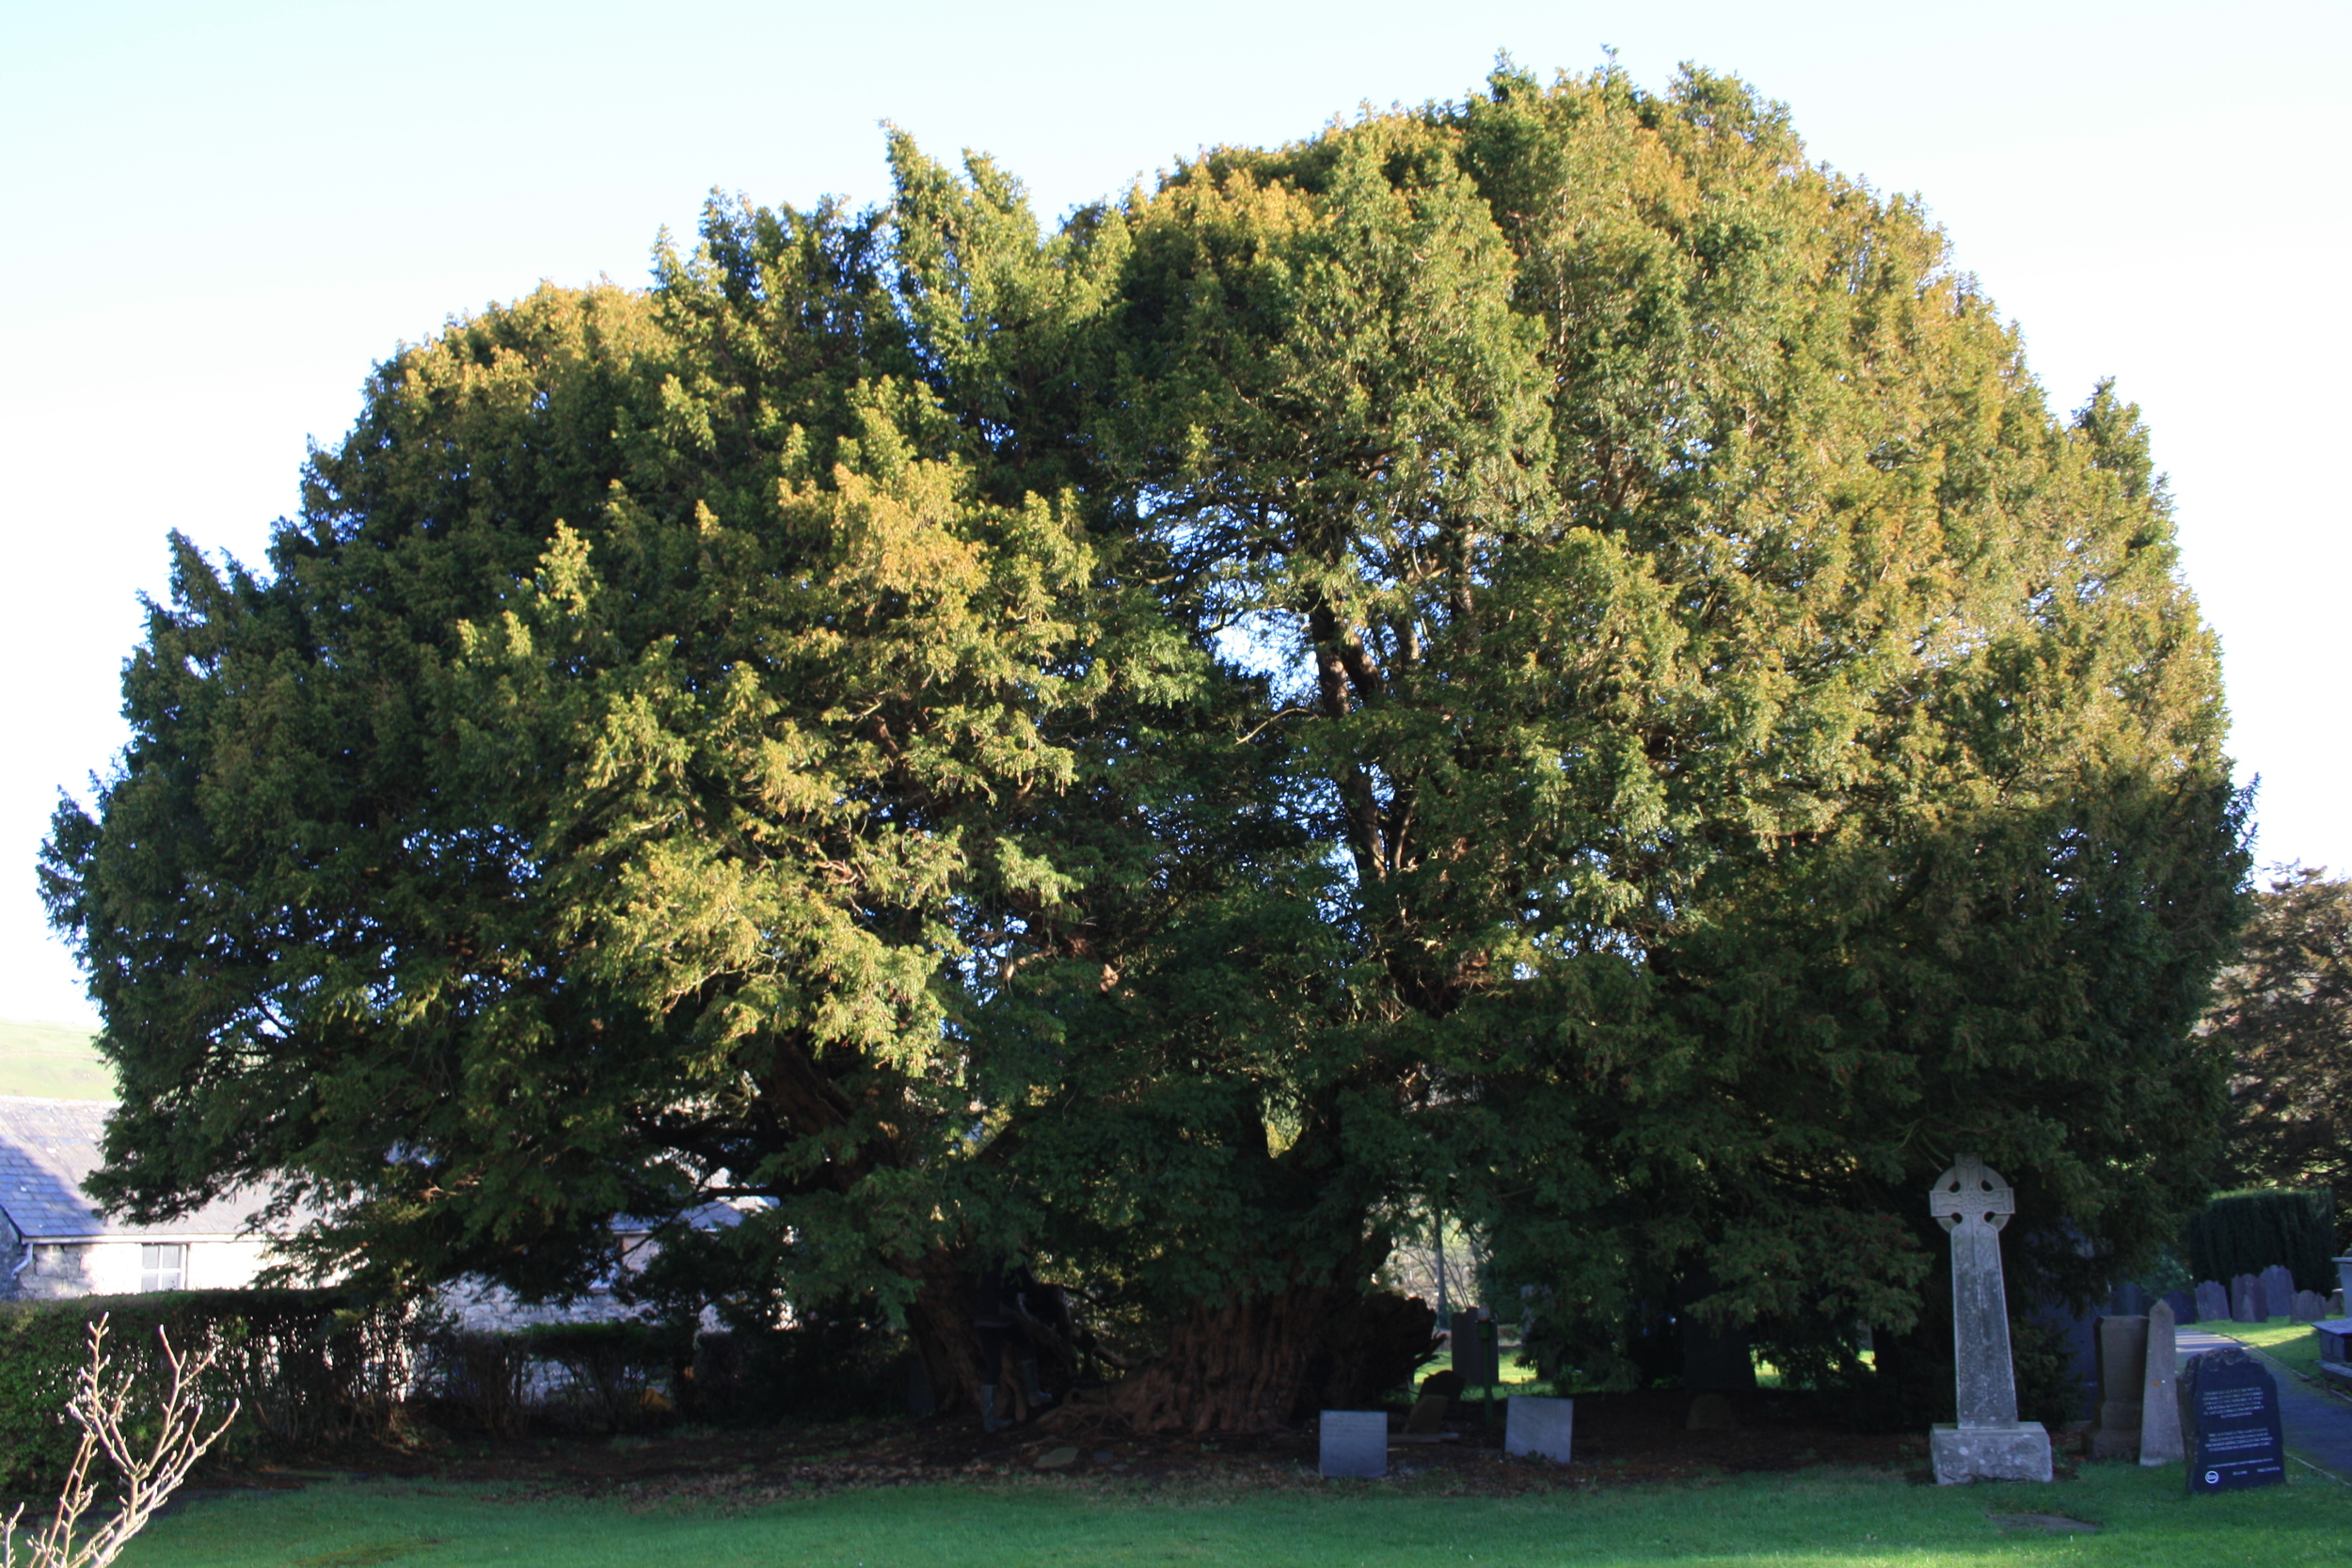 The Llangernyw Yew: one of the oldest life forms on our planet.